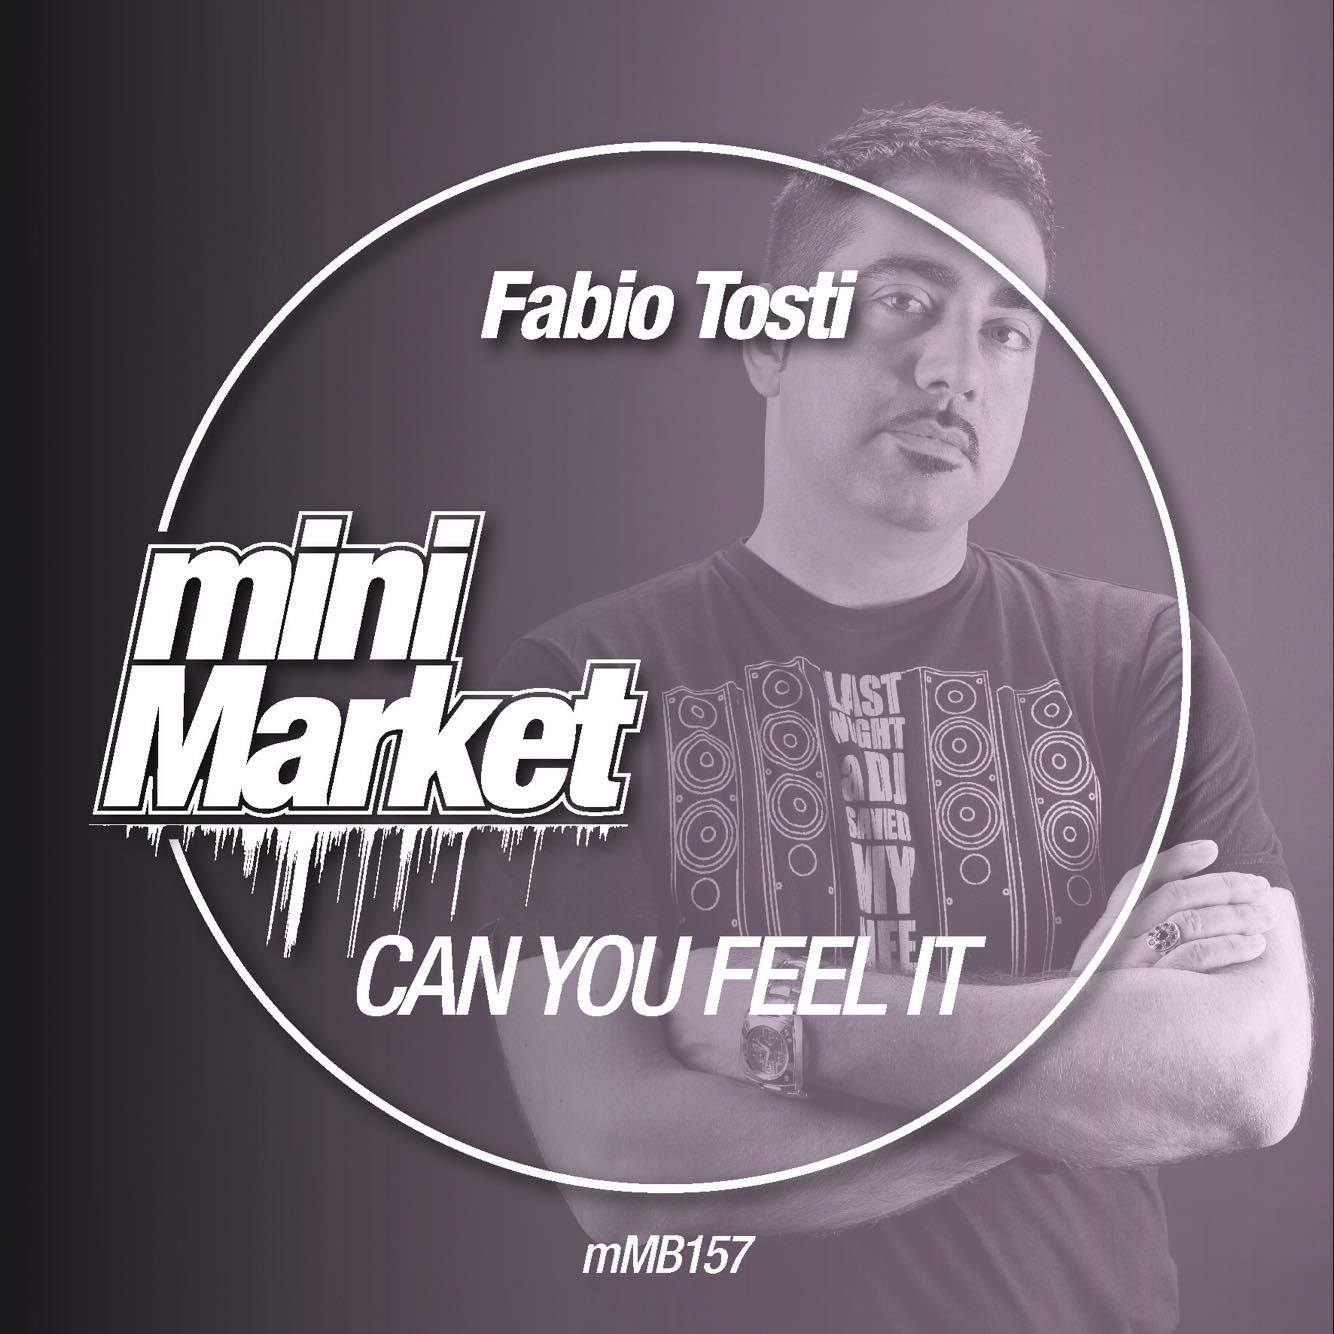 fabio-tosti-can-you-feel-it